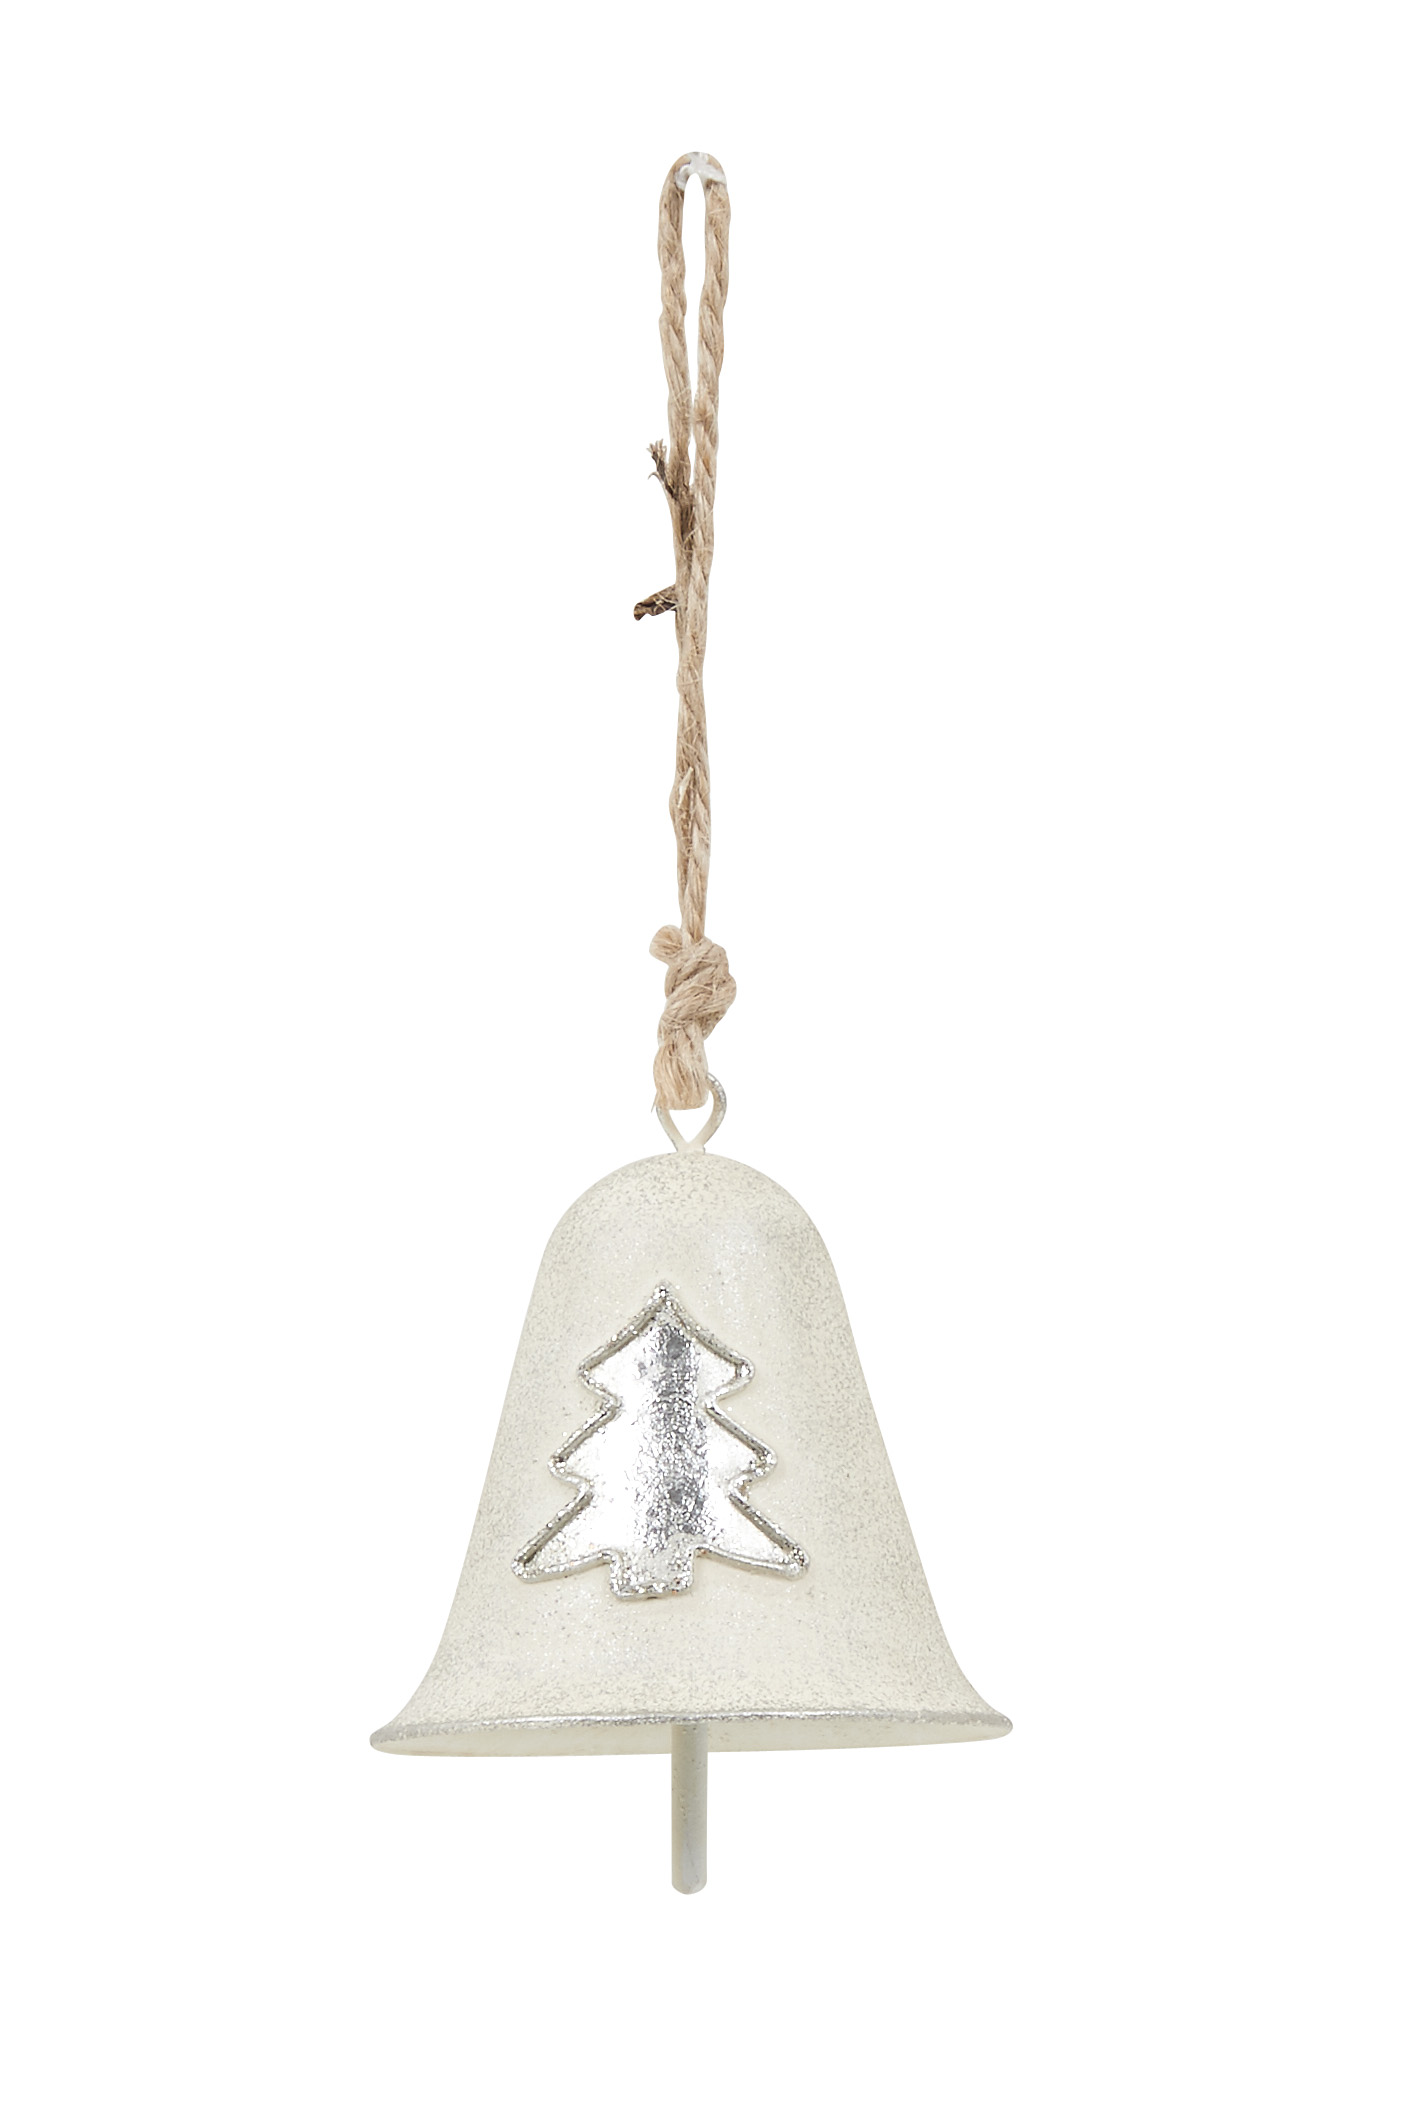 Nordic White & Silver Hanging Bell